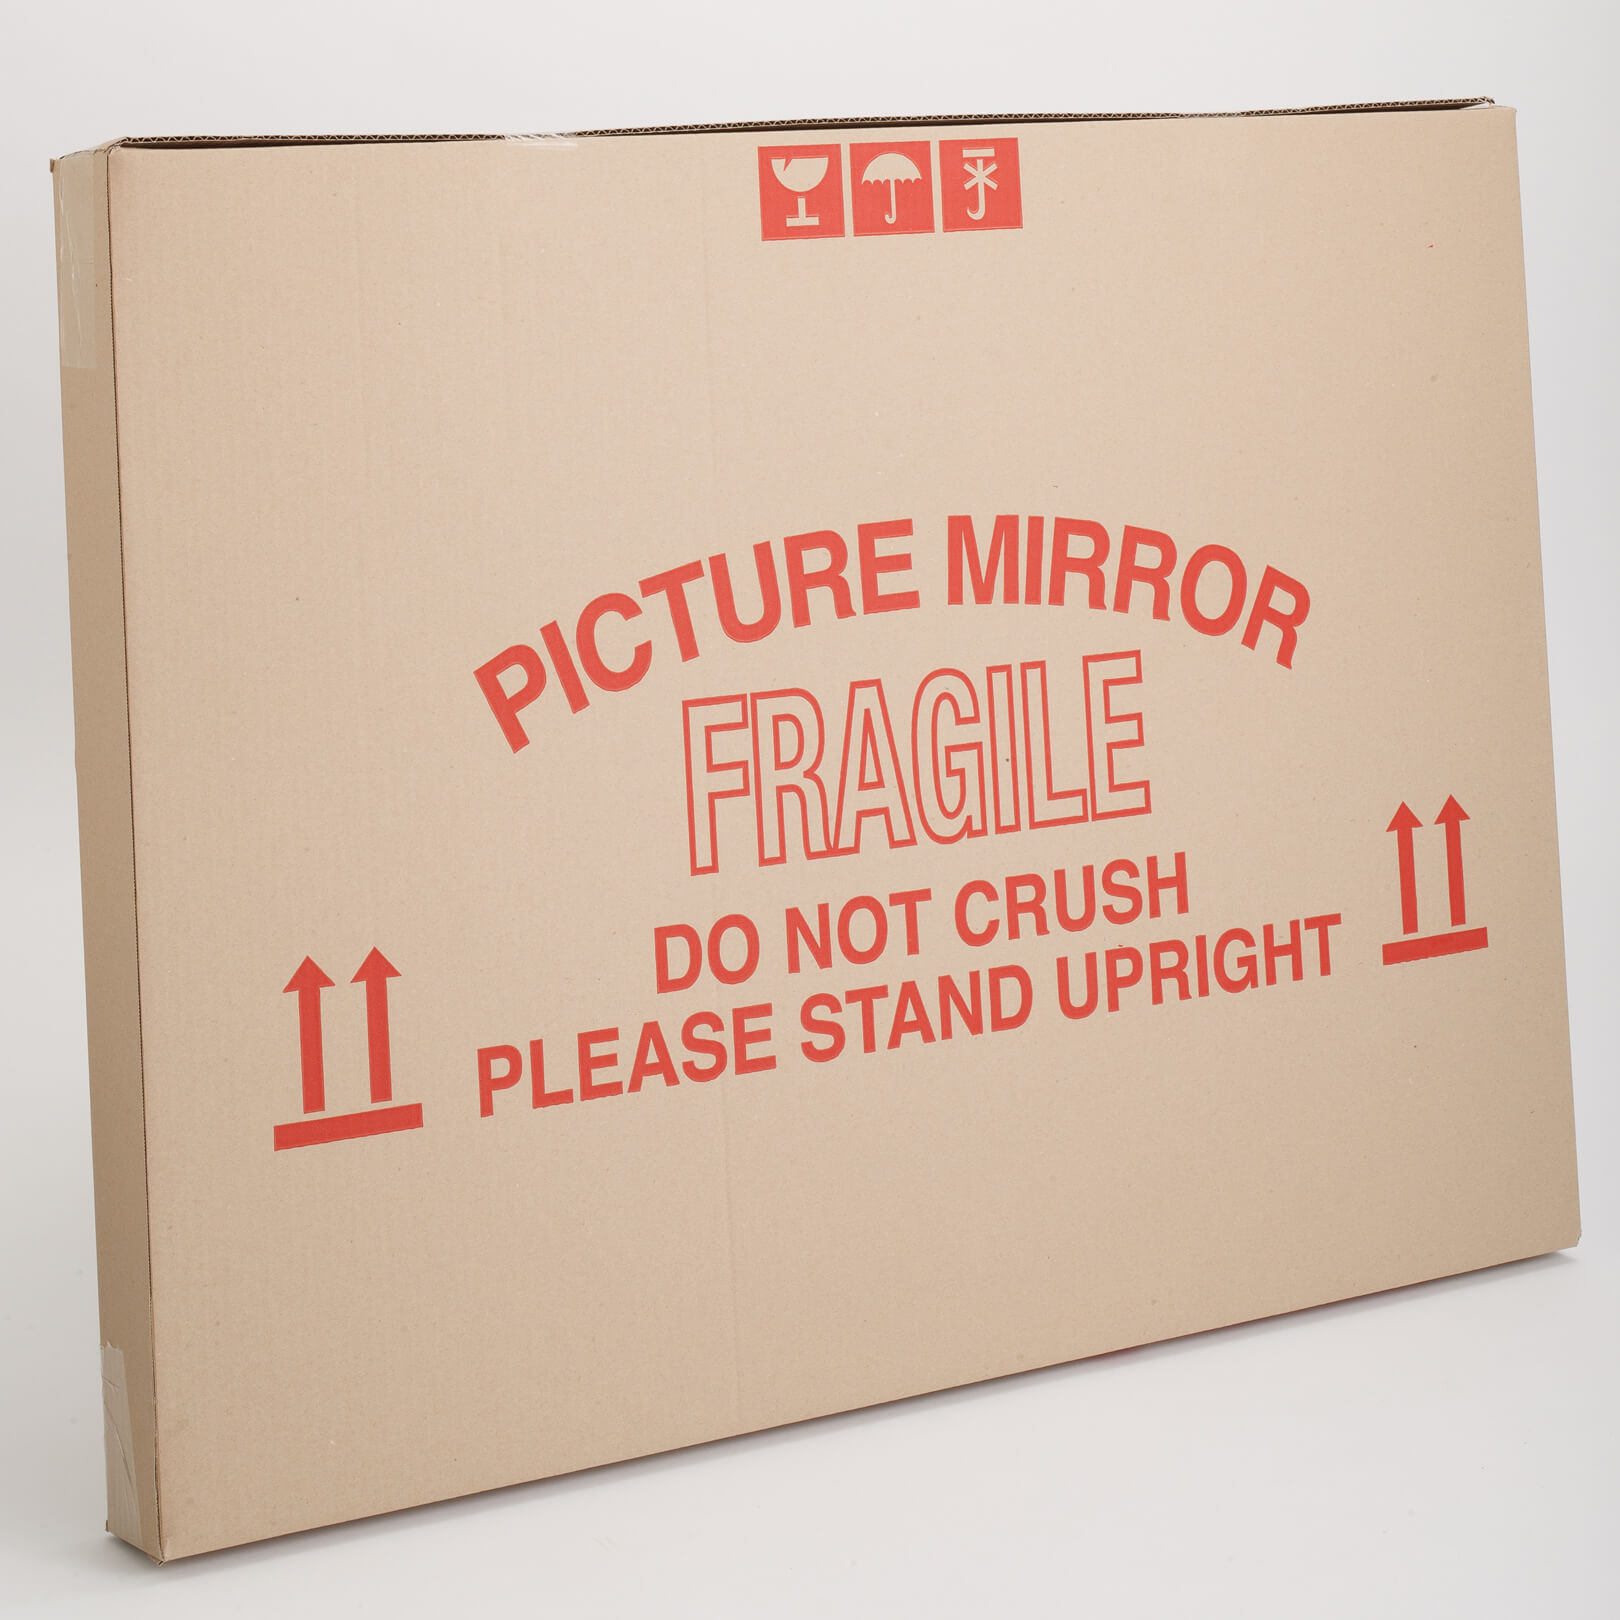 picture and mirror moving box